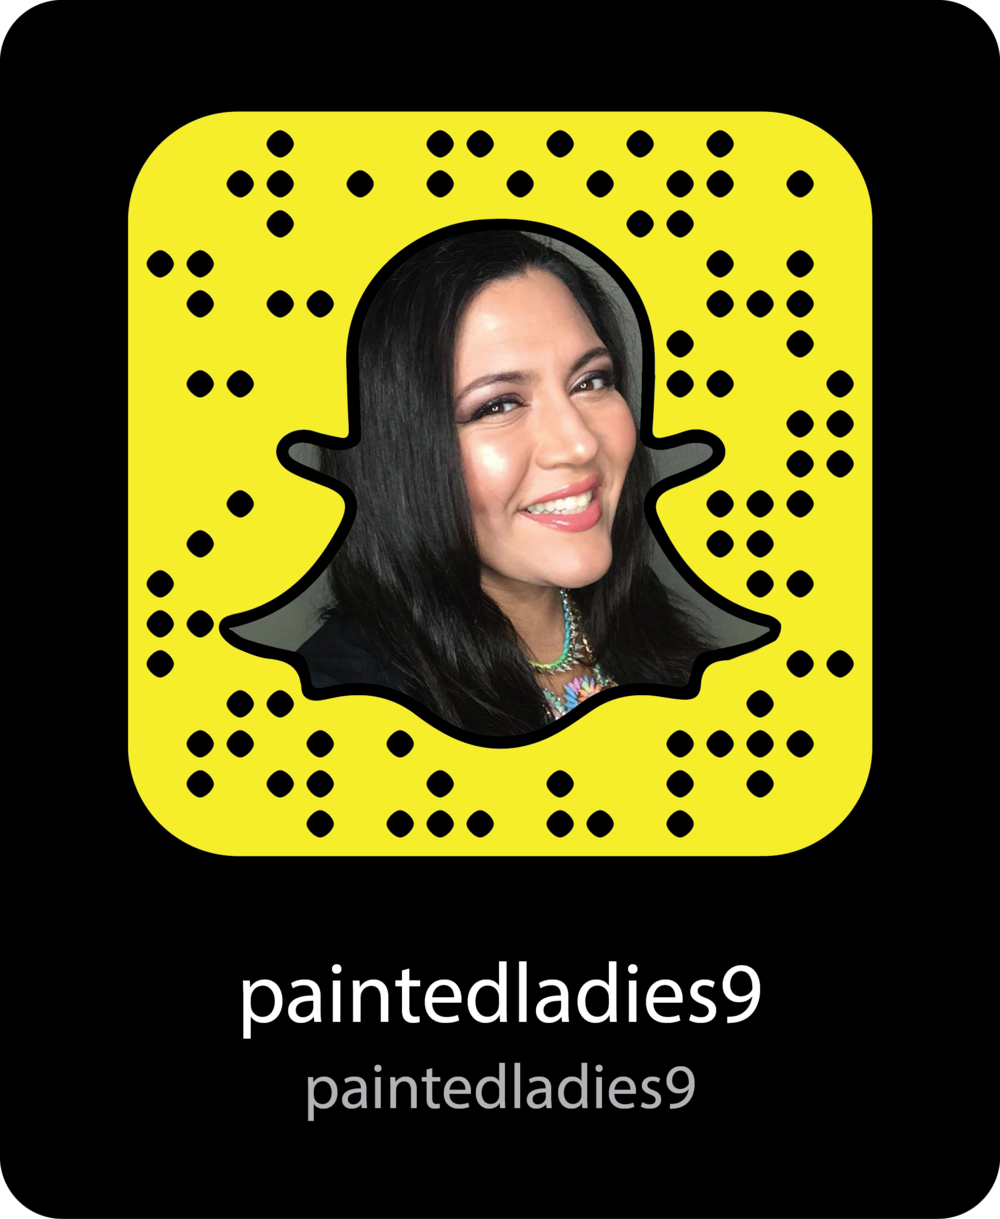 PaintedLadies9-Beauty-Bloggers-snapchat-snapcode.png